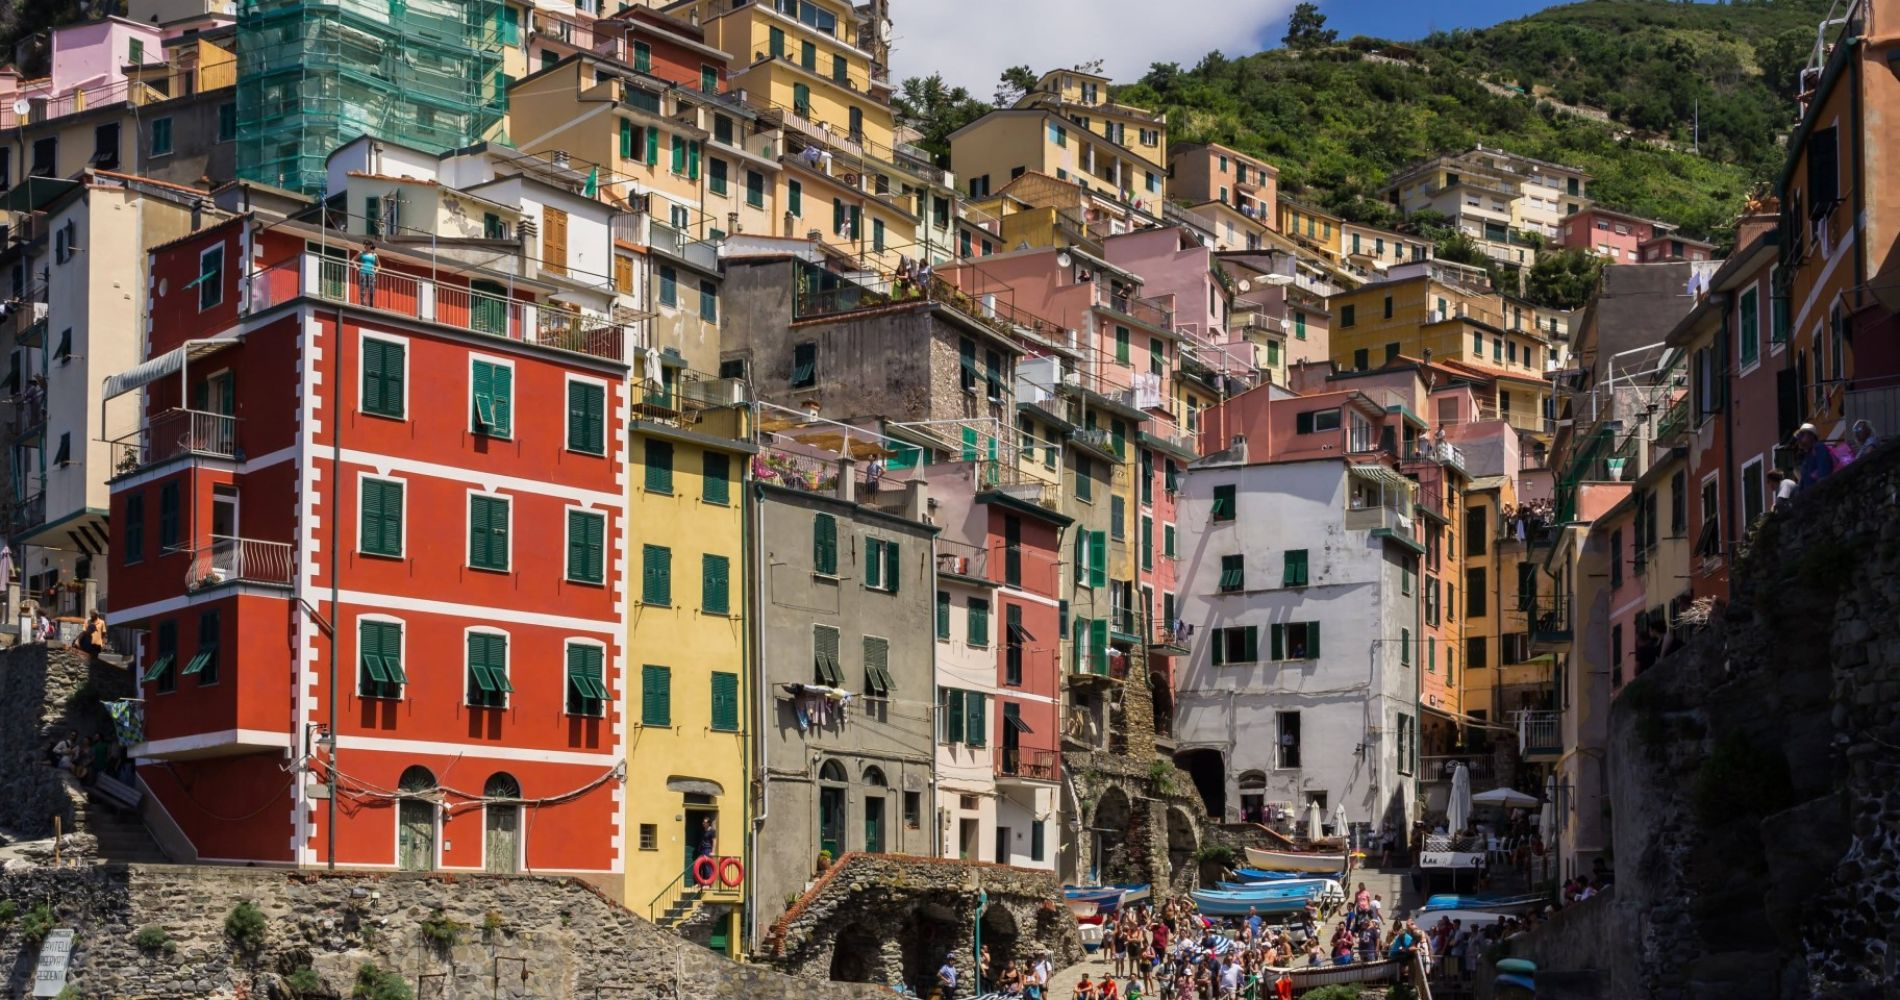 Hike Cinque Terre villages in Italy